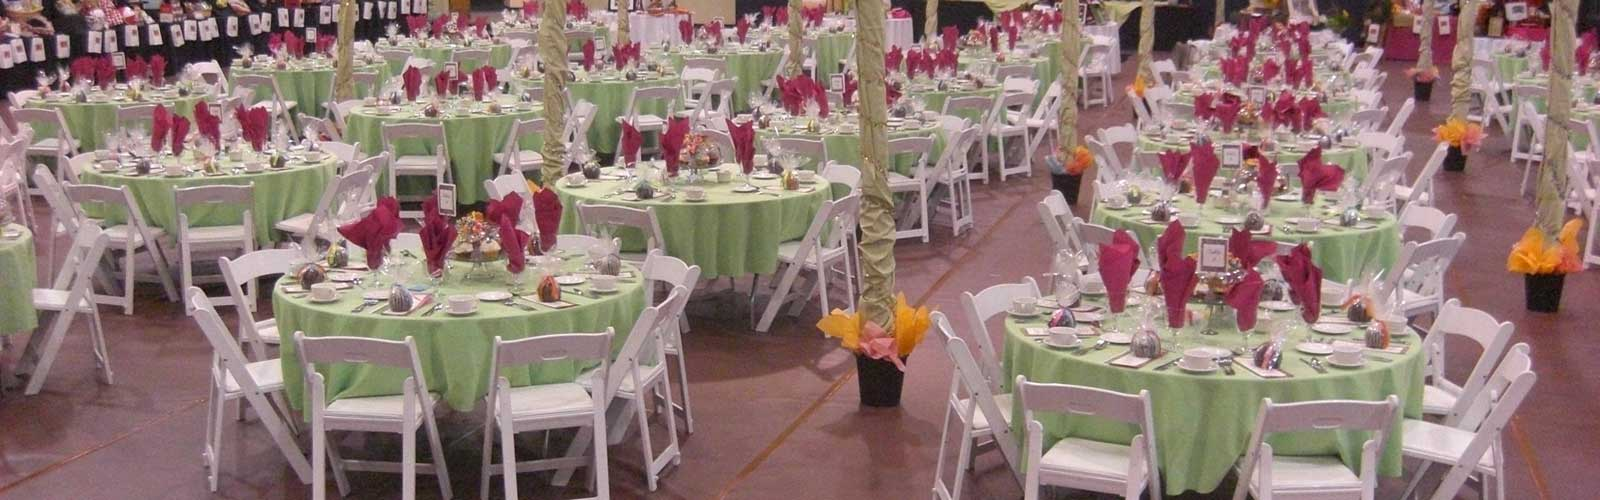 sun rental equipment rental and party rental in mentor oh